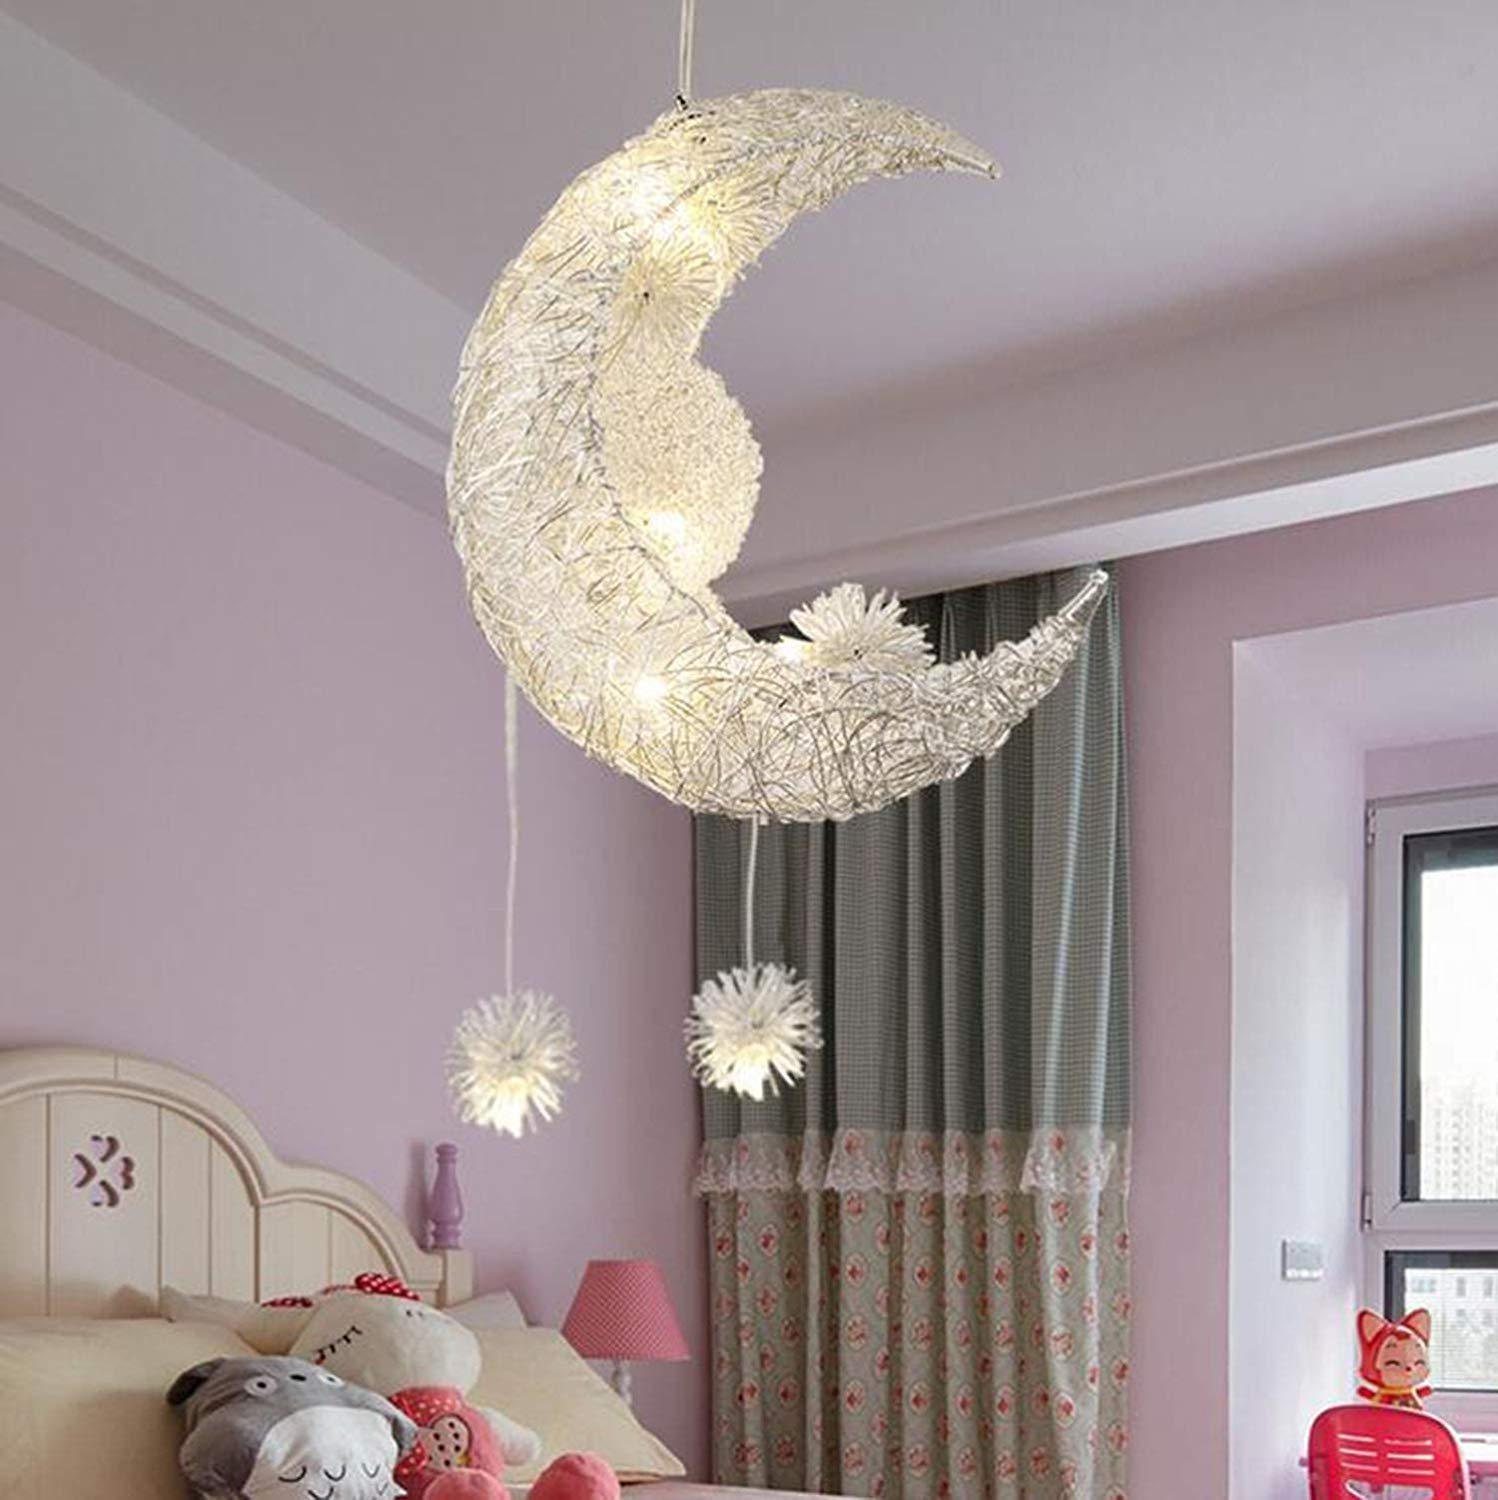 Youtree Indoor Lighting Star Moon Children Room Lighting Creative Personality Chandelier Restaurant Bedroom Lighting Light (Color : 110V White)